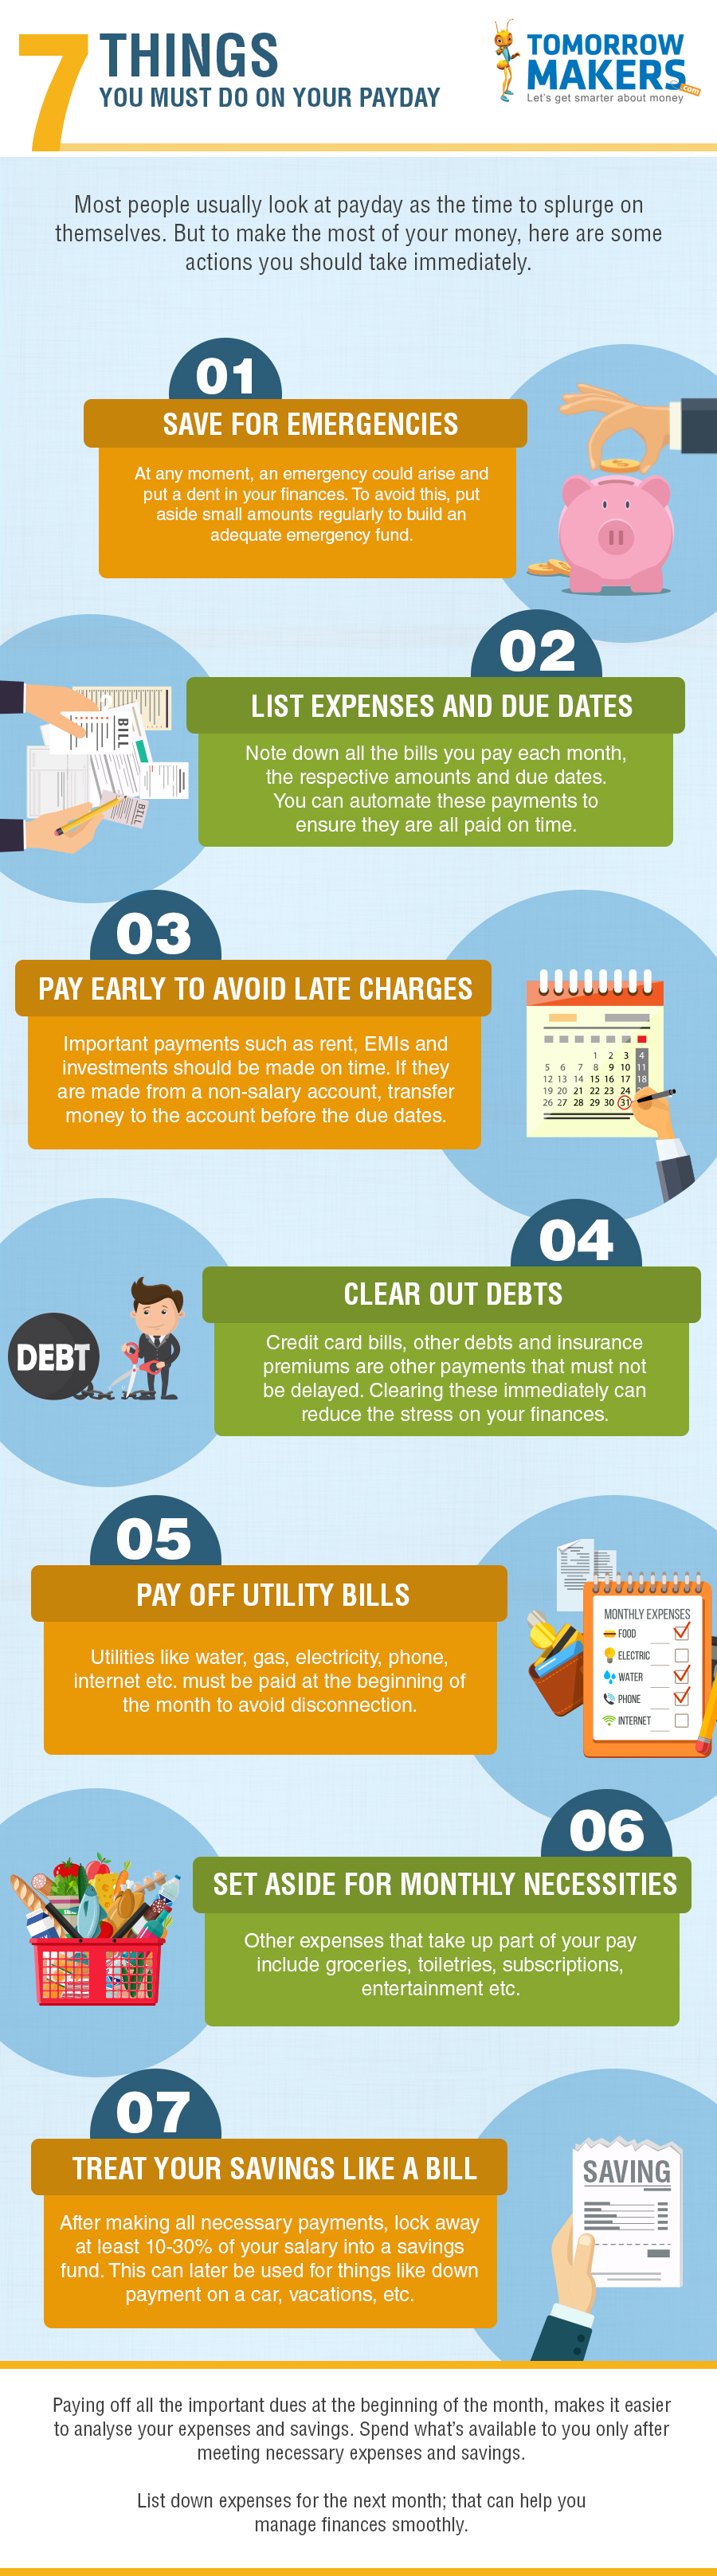 7-things-you-must-do-on-your-payday-v2